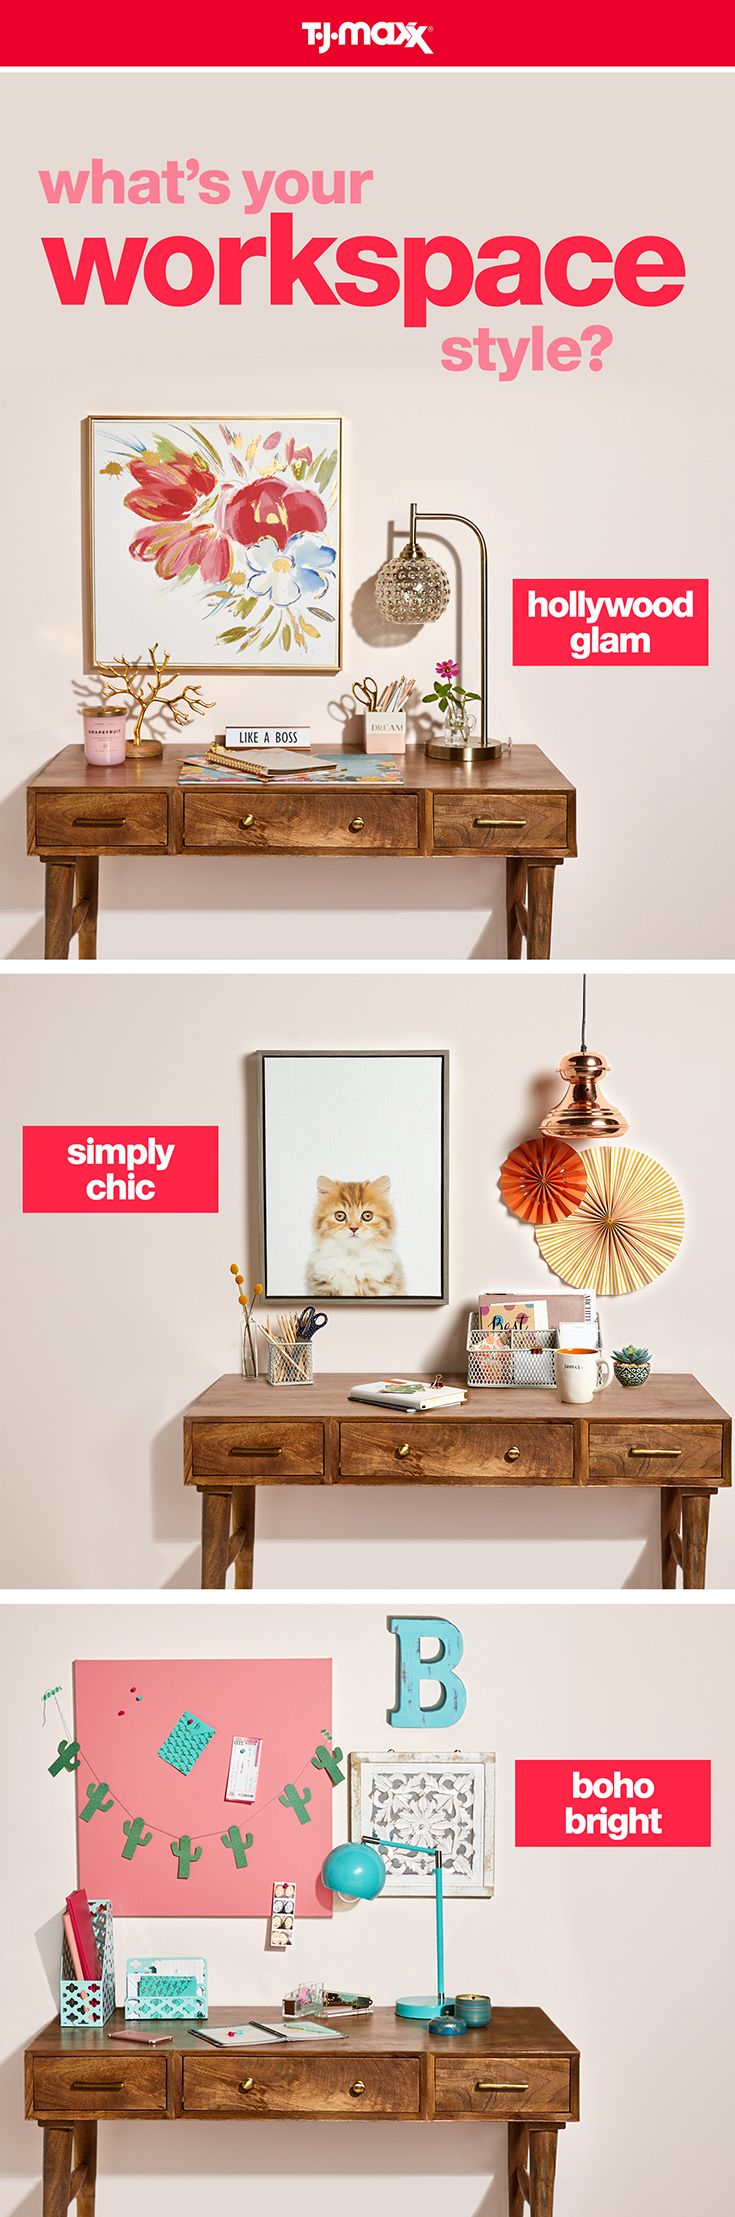 Craft a study space that reflects your style. For a glam look, add metallic art and a sparkle-heavy lamp. Or, opt for a simply chic desk with minimalist décor and neutral hues. For free-spirited style, add pops of teal, candles and some quirky accents. Find more desk essentials at tjmaxx.com and T.J.Maxx.